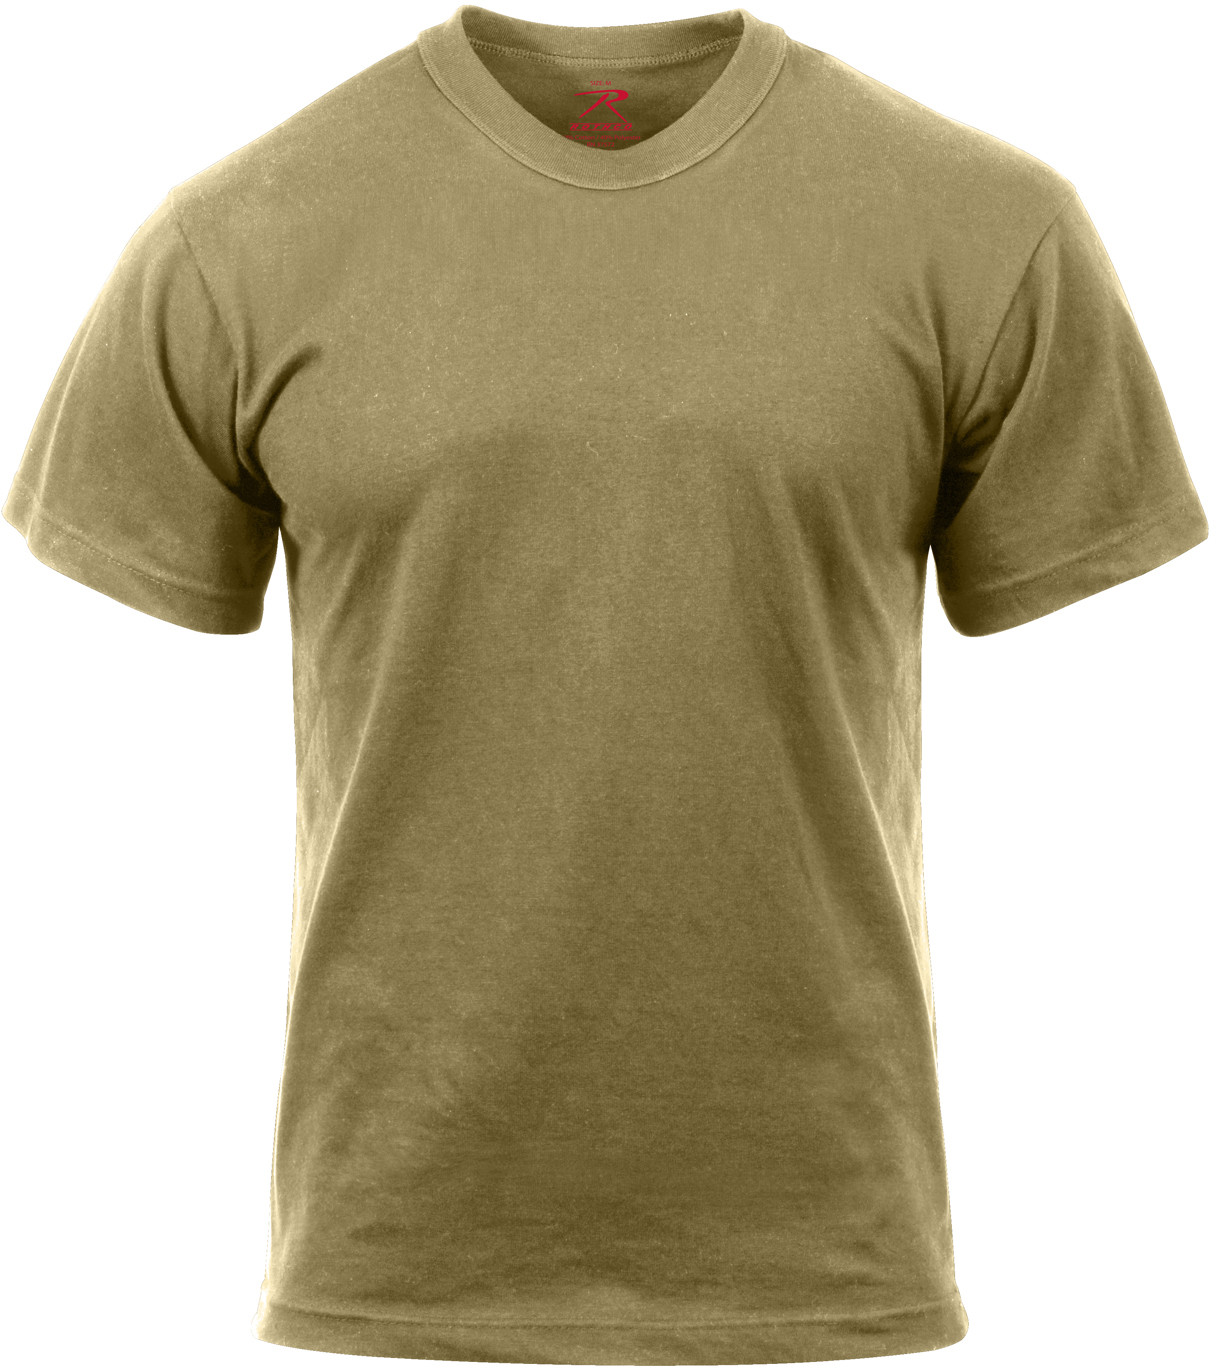 Coyote Brown AR-670-1 Official Army T-Shirt 4ad92e8f8d2